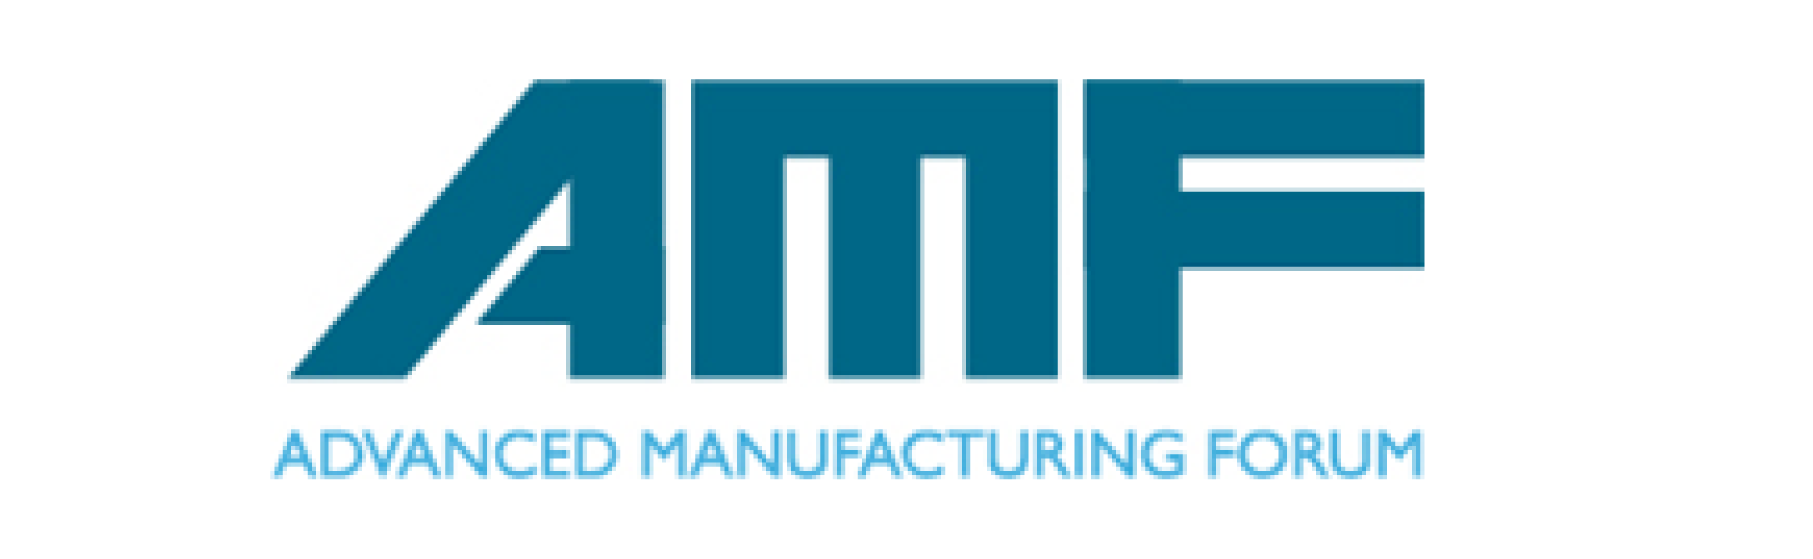 Advanced Manufacturing Forum